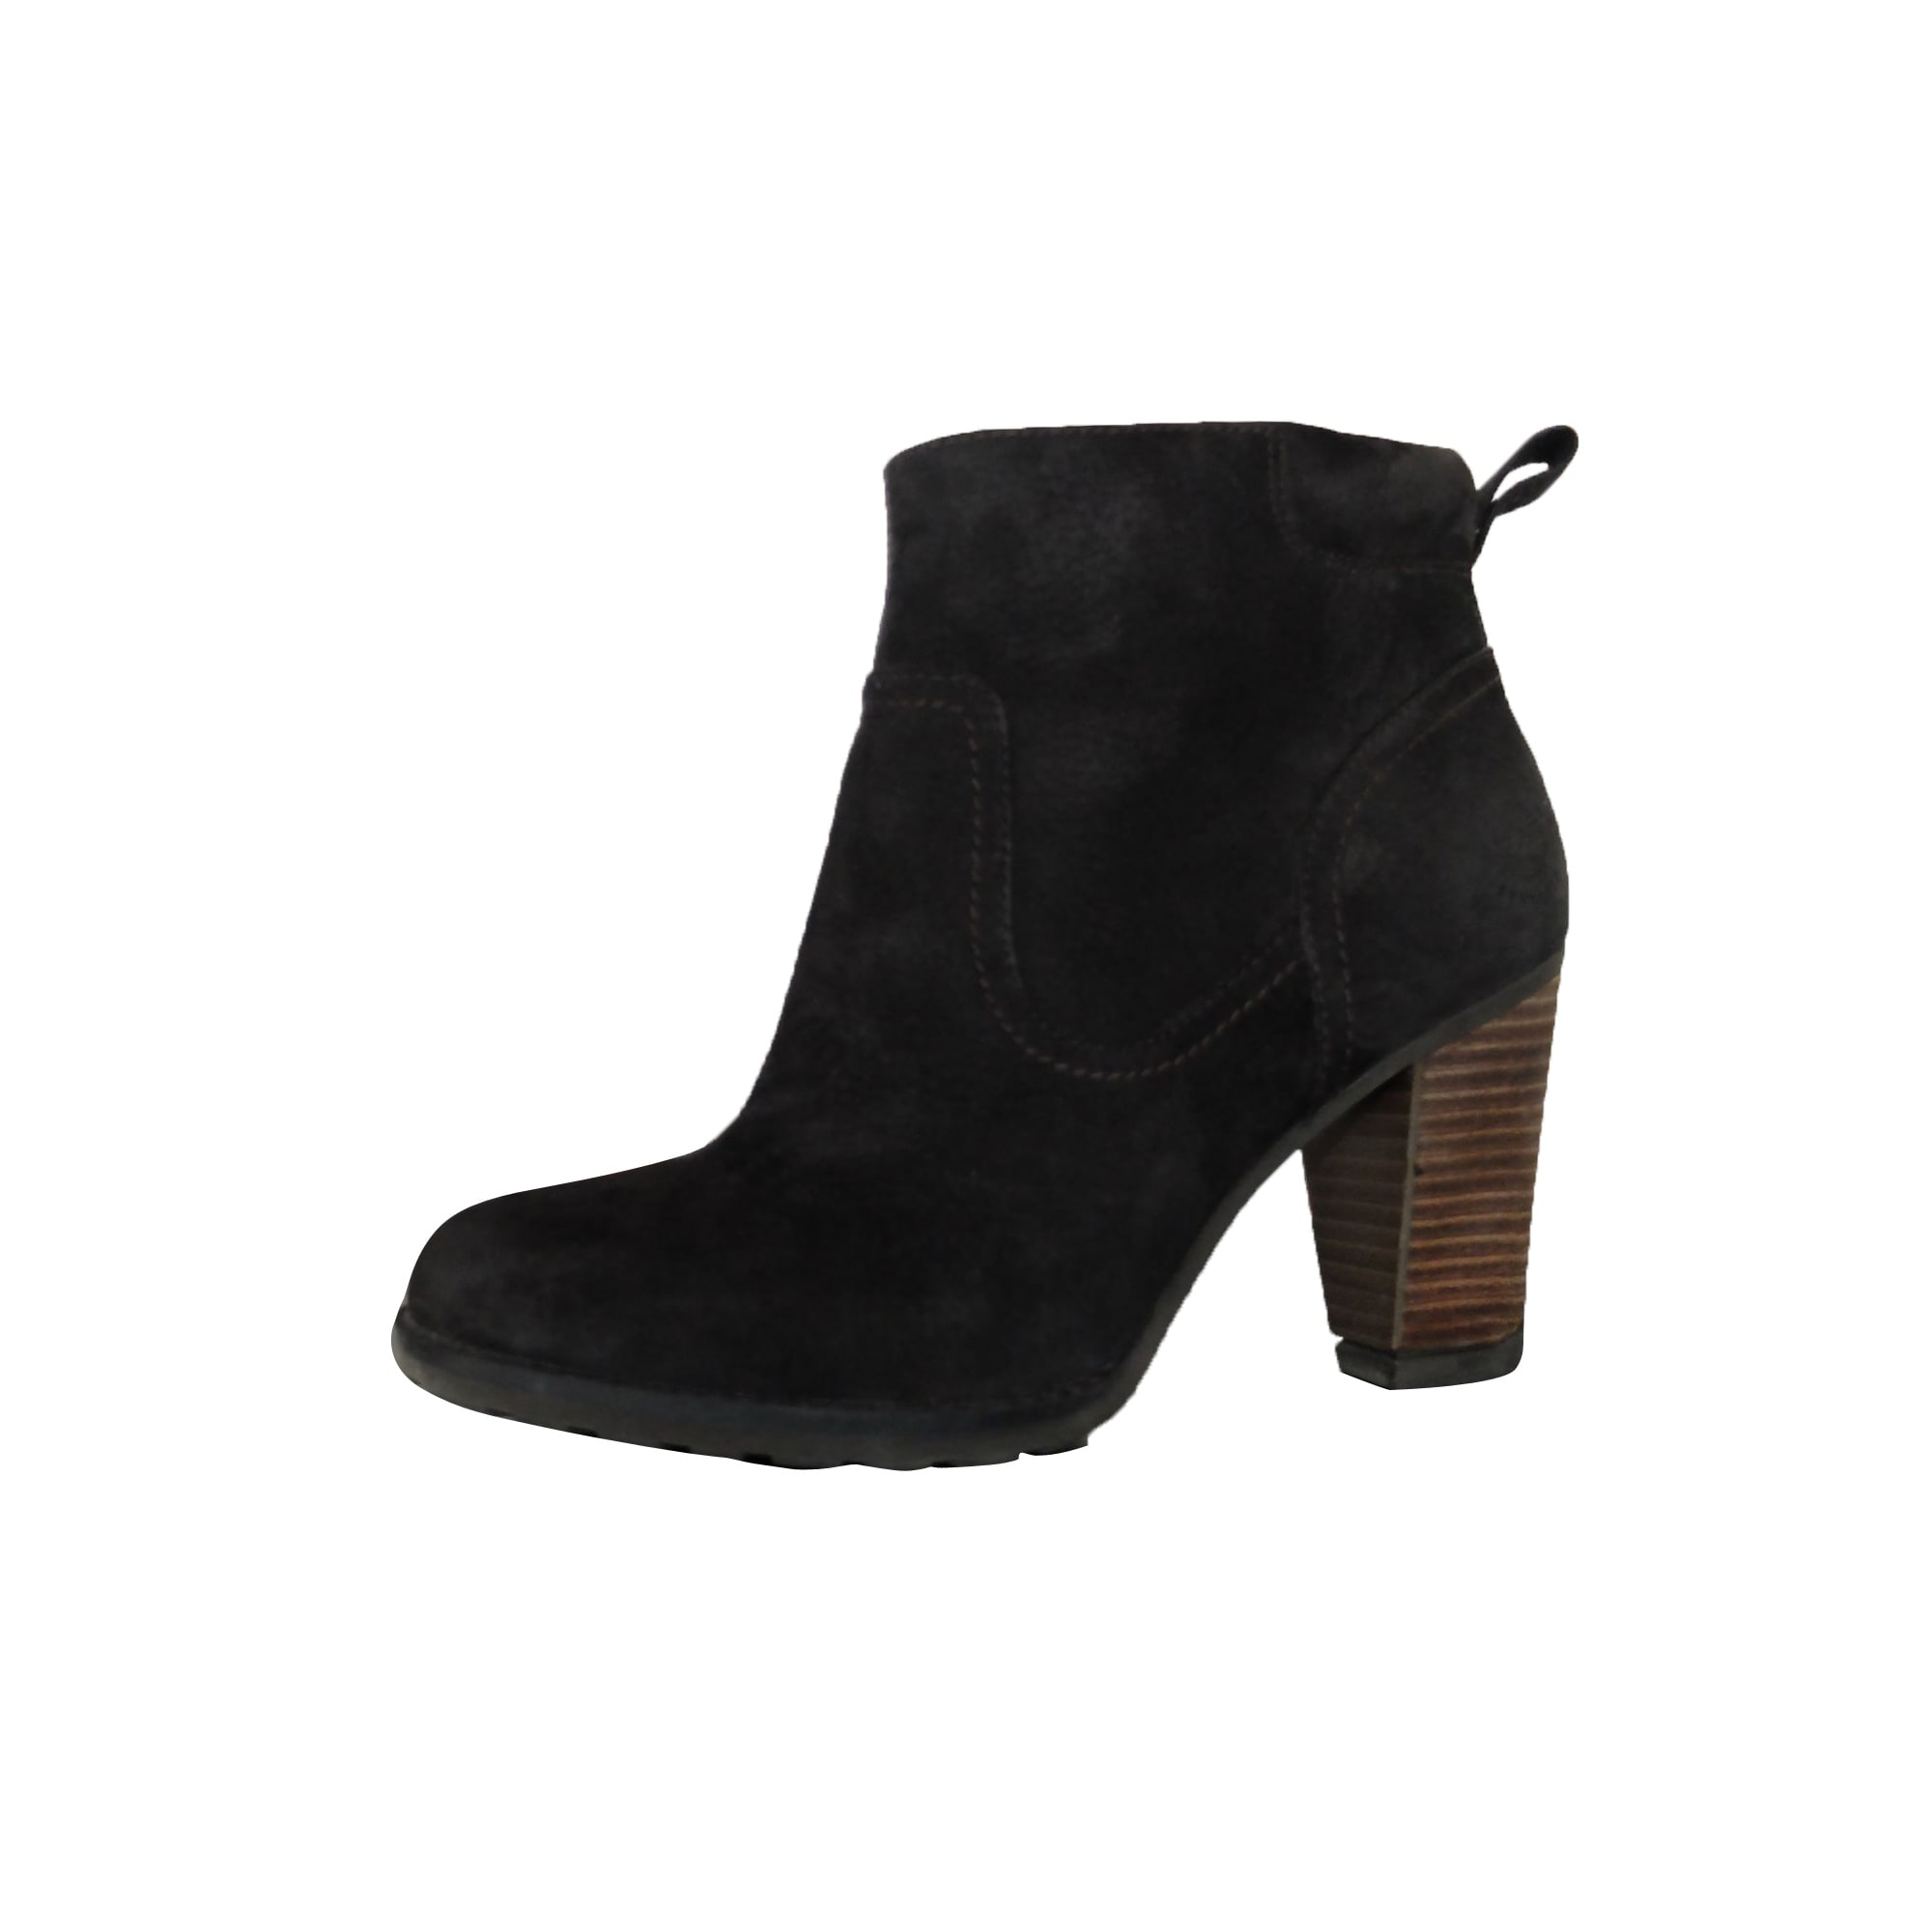 6763d81f17f High Heel Ankle Boots TIMBERLAND